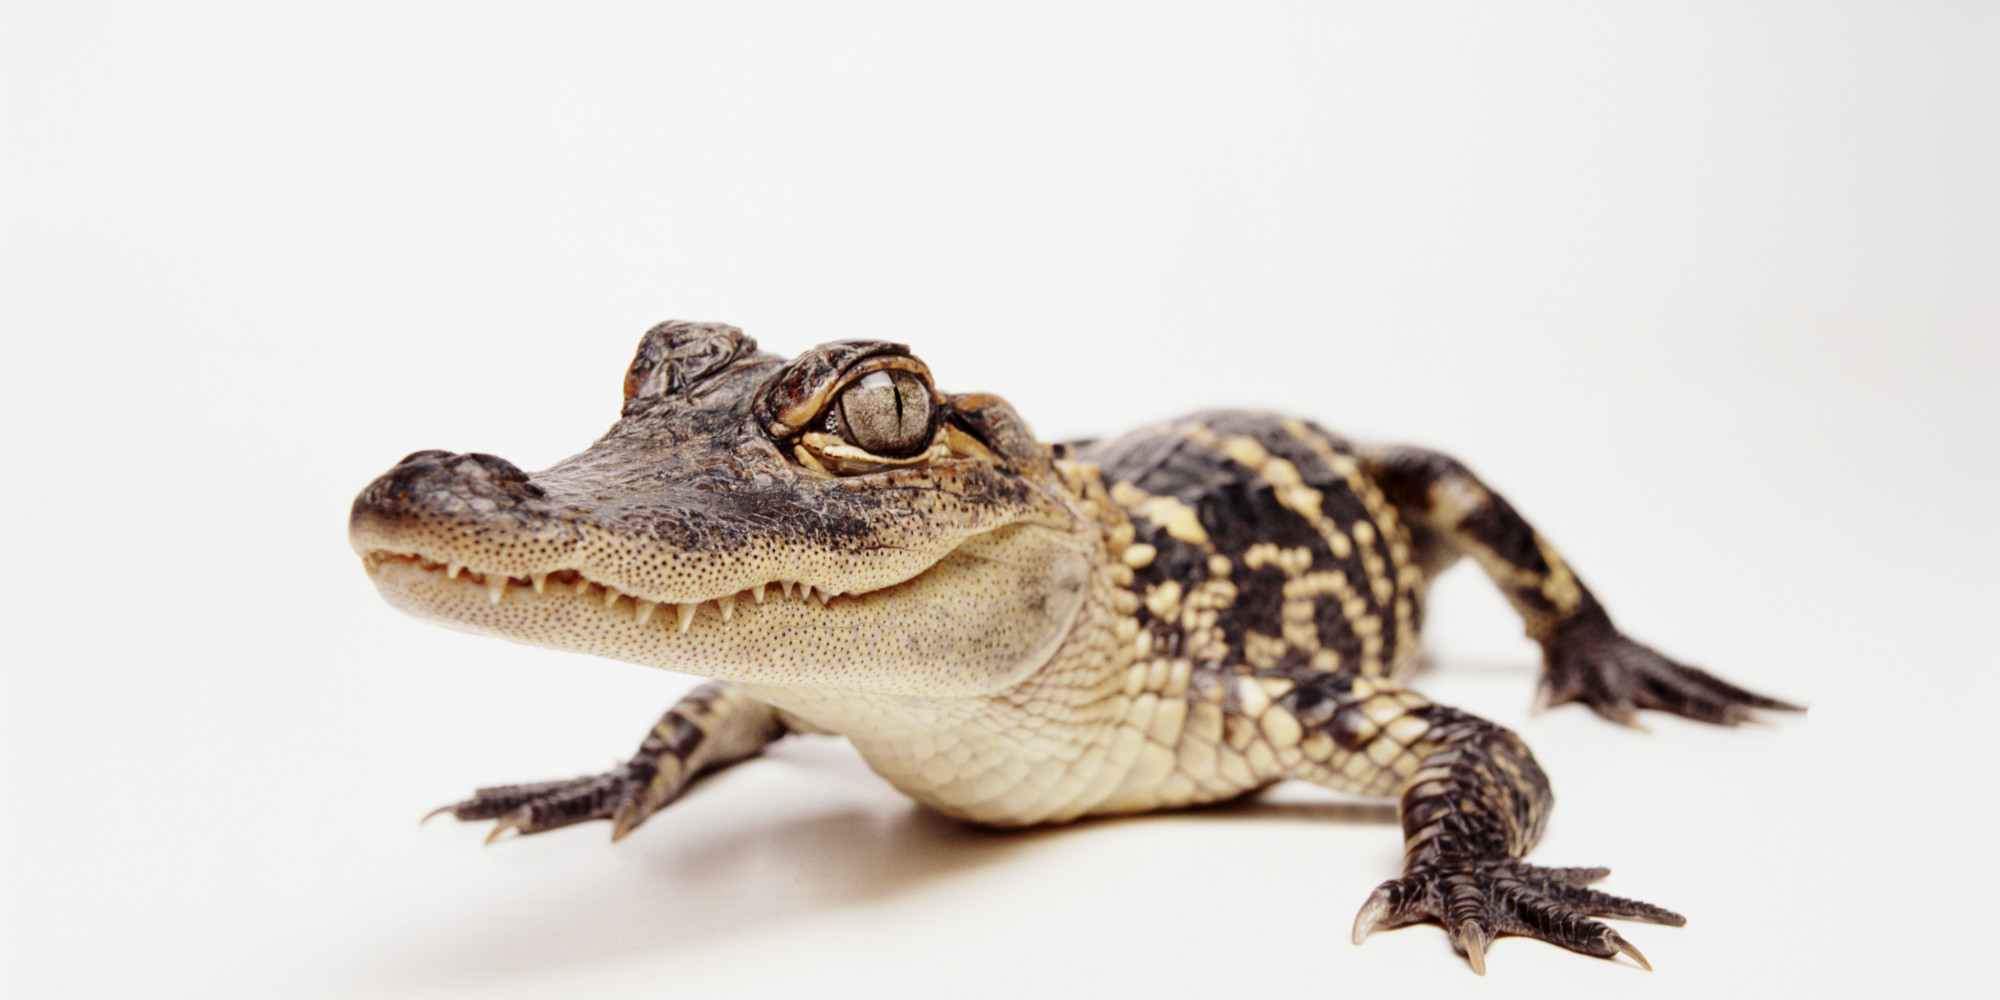 Florida Man Tries To Trade Alligator For Beer, Gets Cited | HuffPost